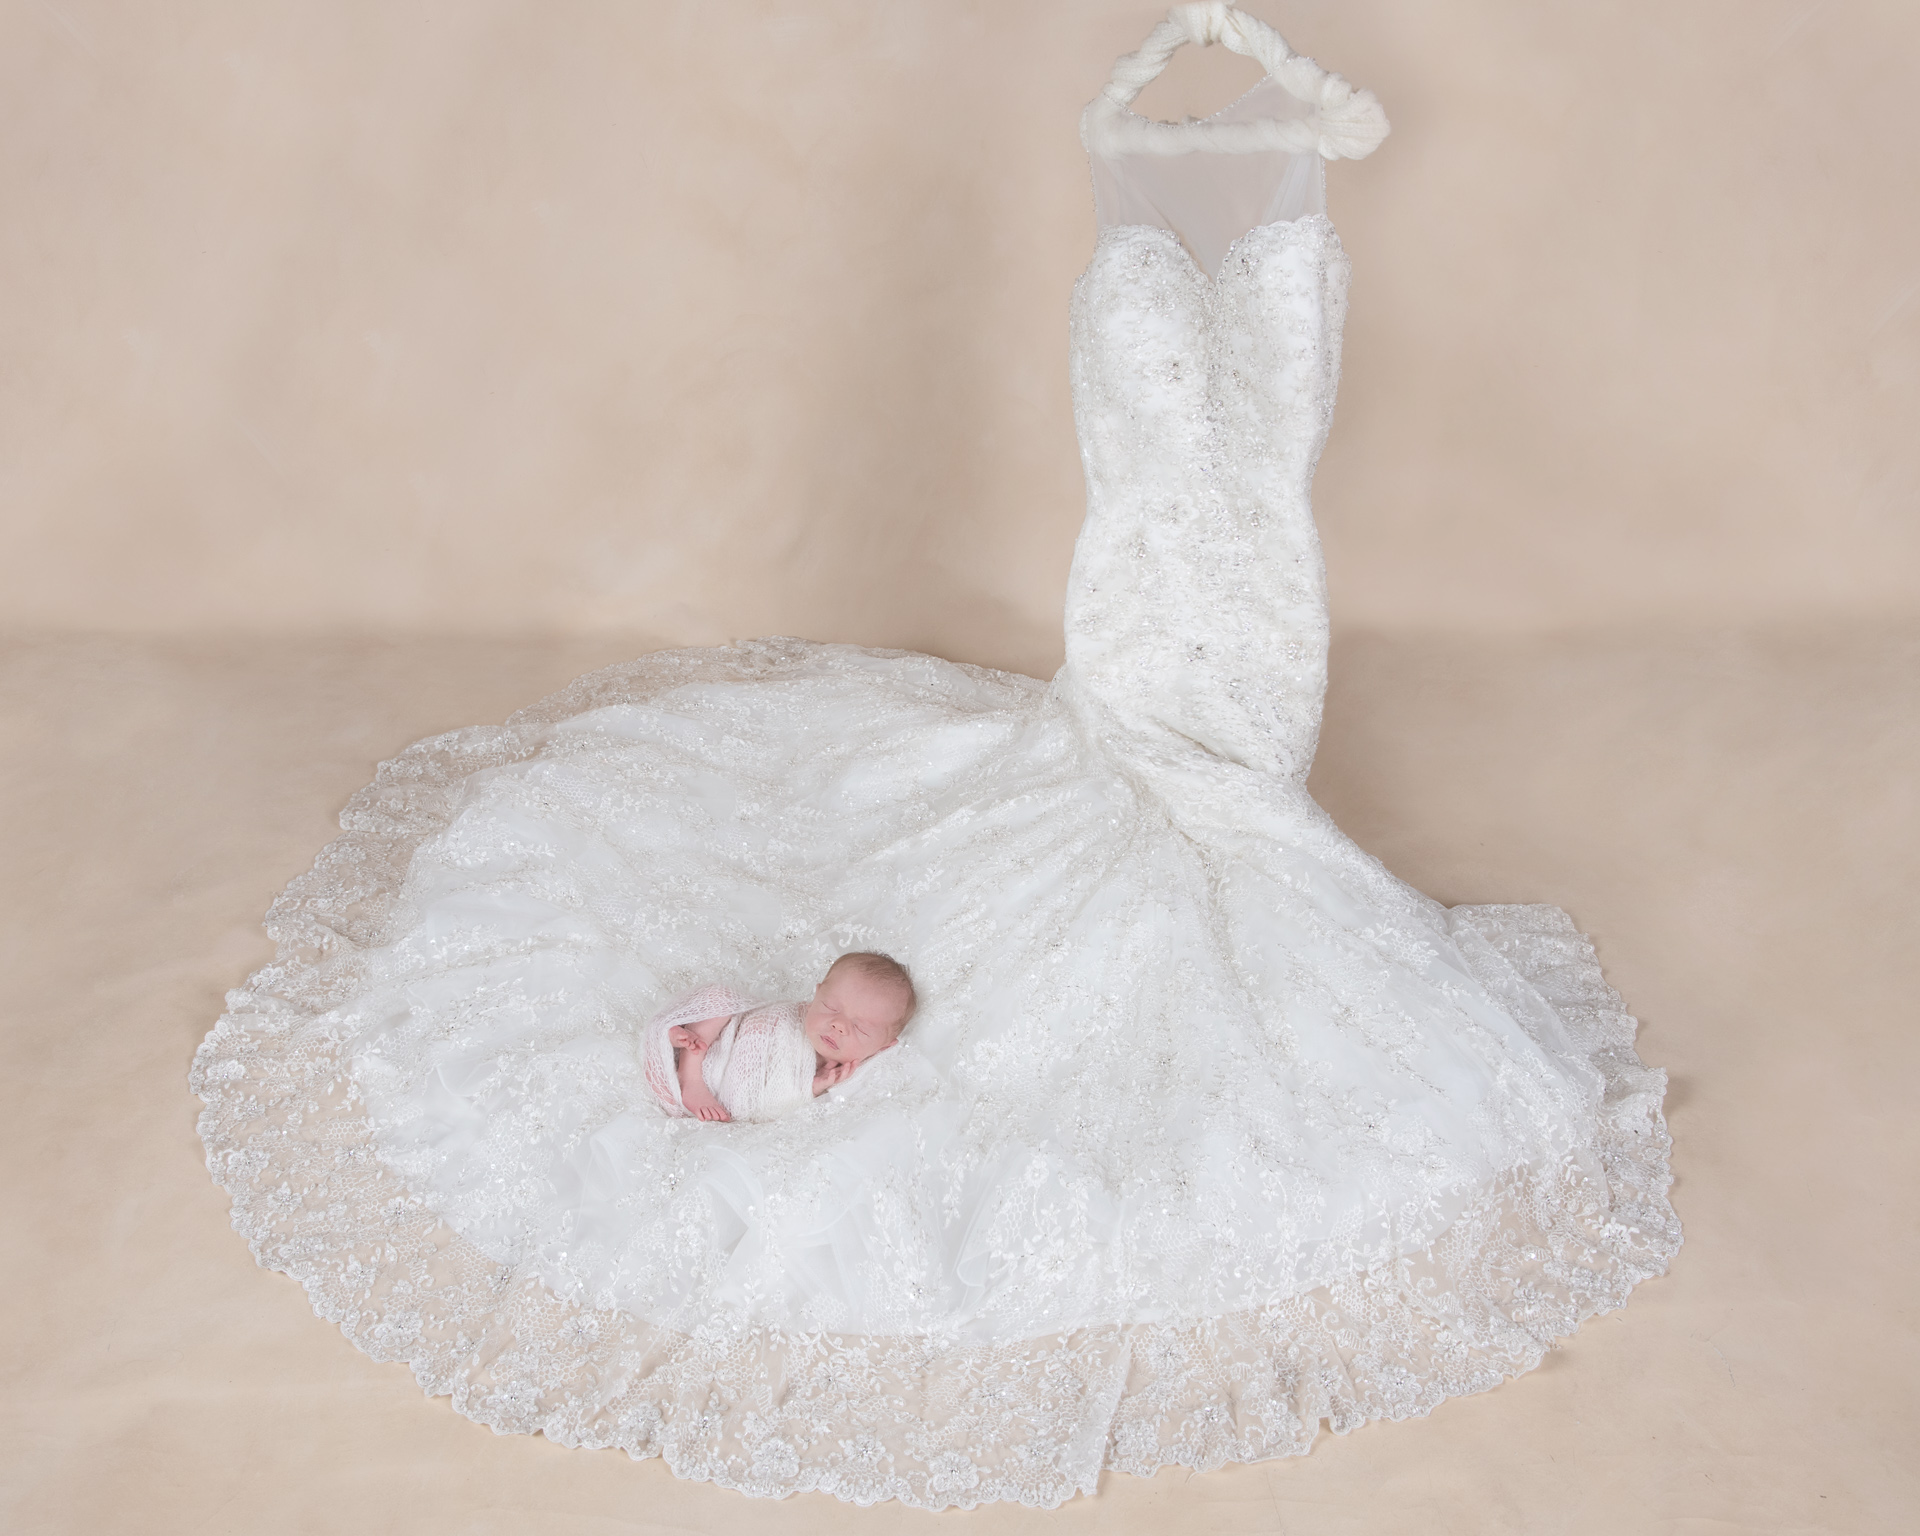 Newborn on white wrap rests on the very end of its mother's wedding dress which is placed on a hanger. Light brown backdrop.